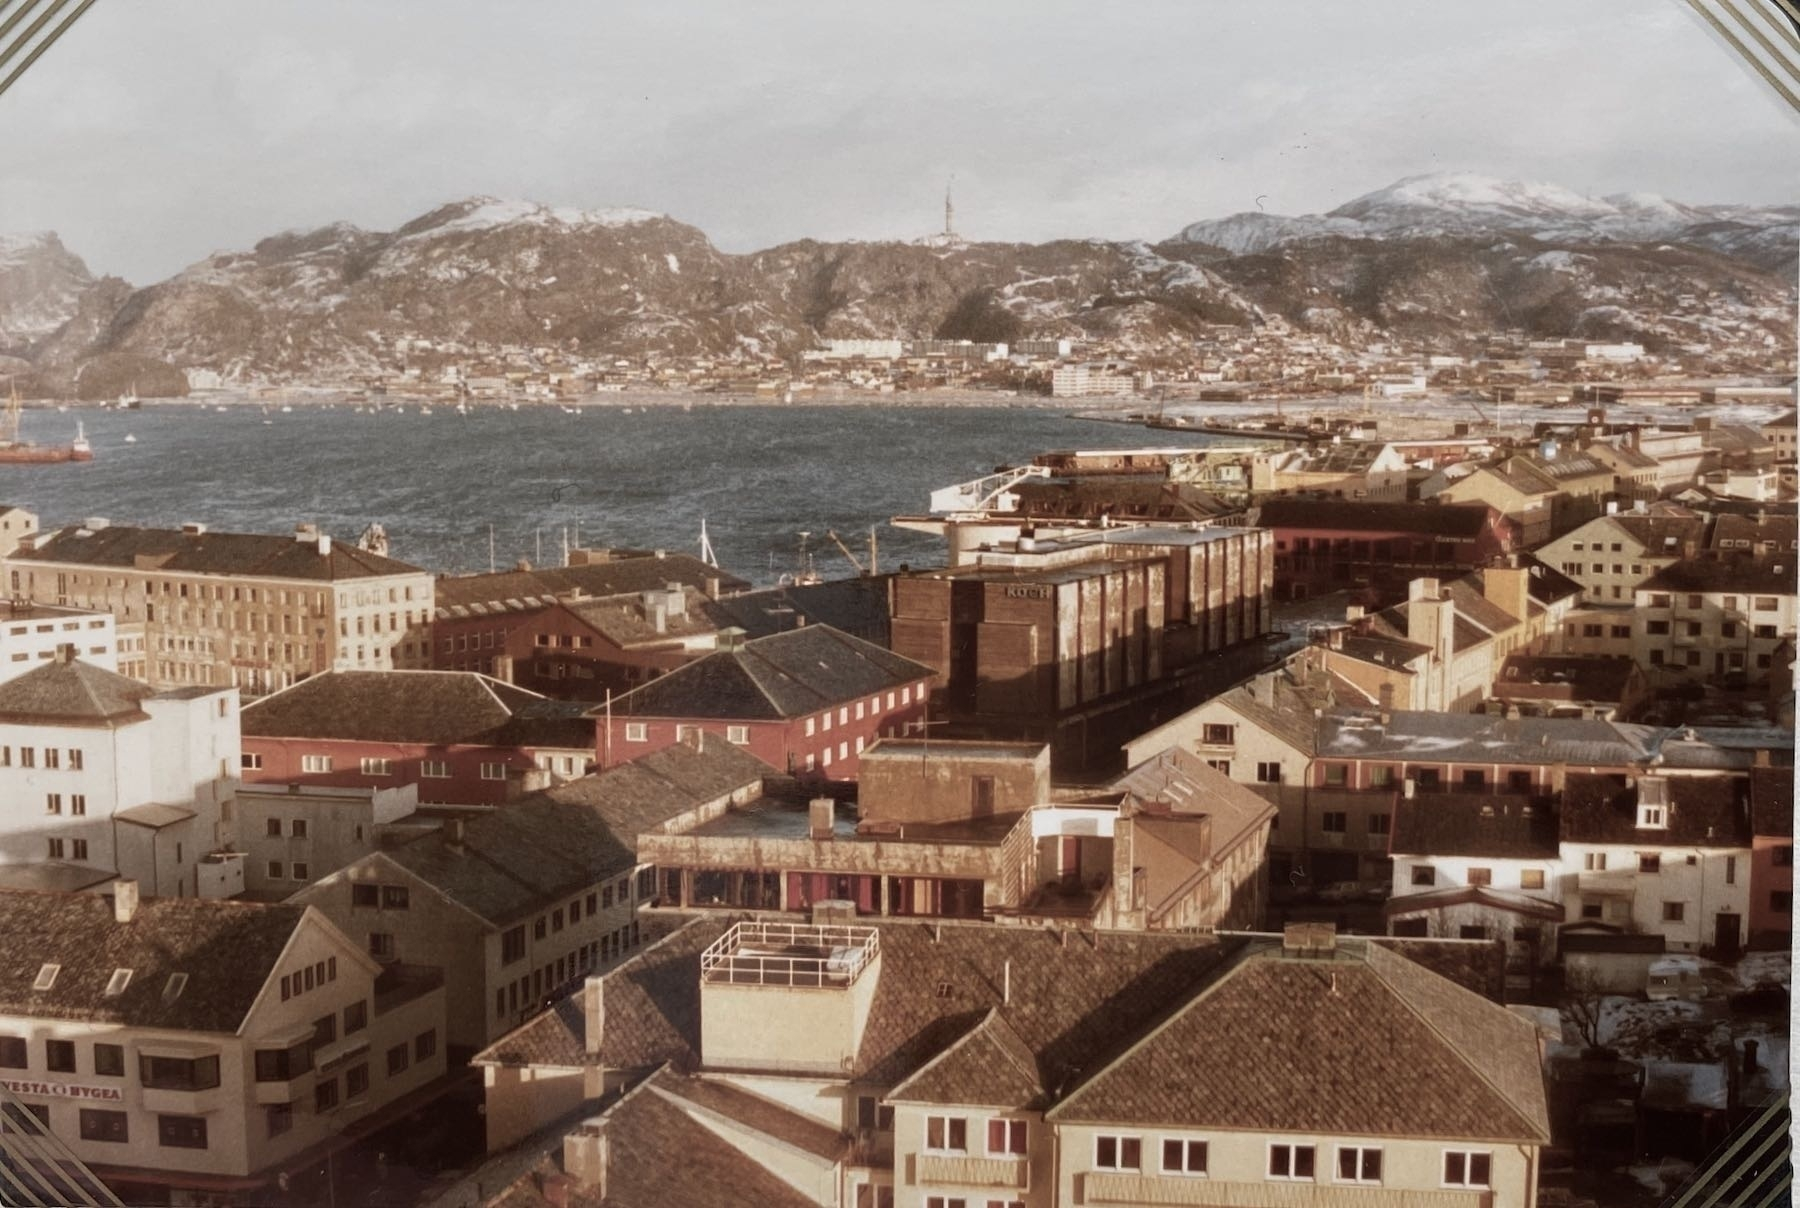 View across Bodø to the harbour.